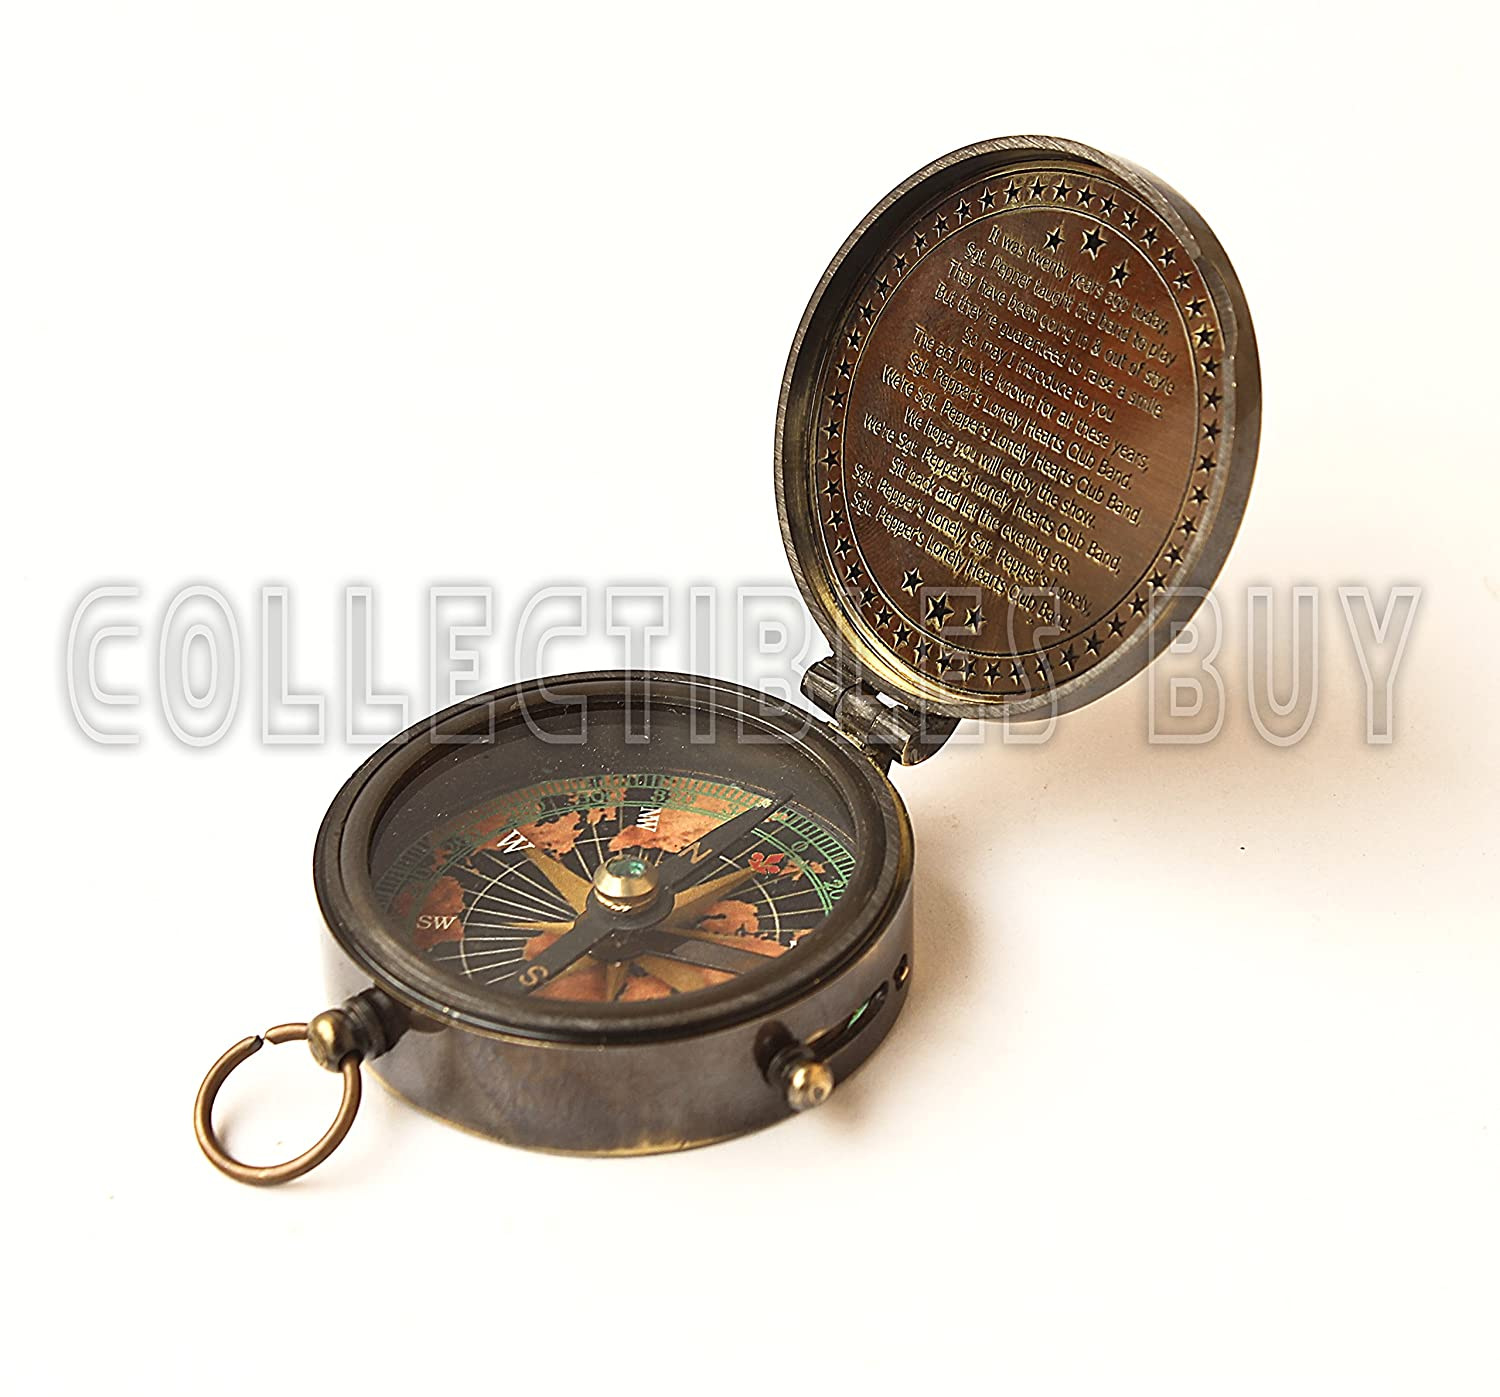 Collectibles Buy Marine S Peppers Welt Karte Kompass Lonely Band Nautisches Instrument Vintage Navigated Geräte